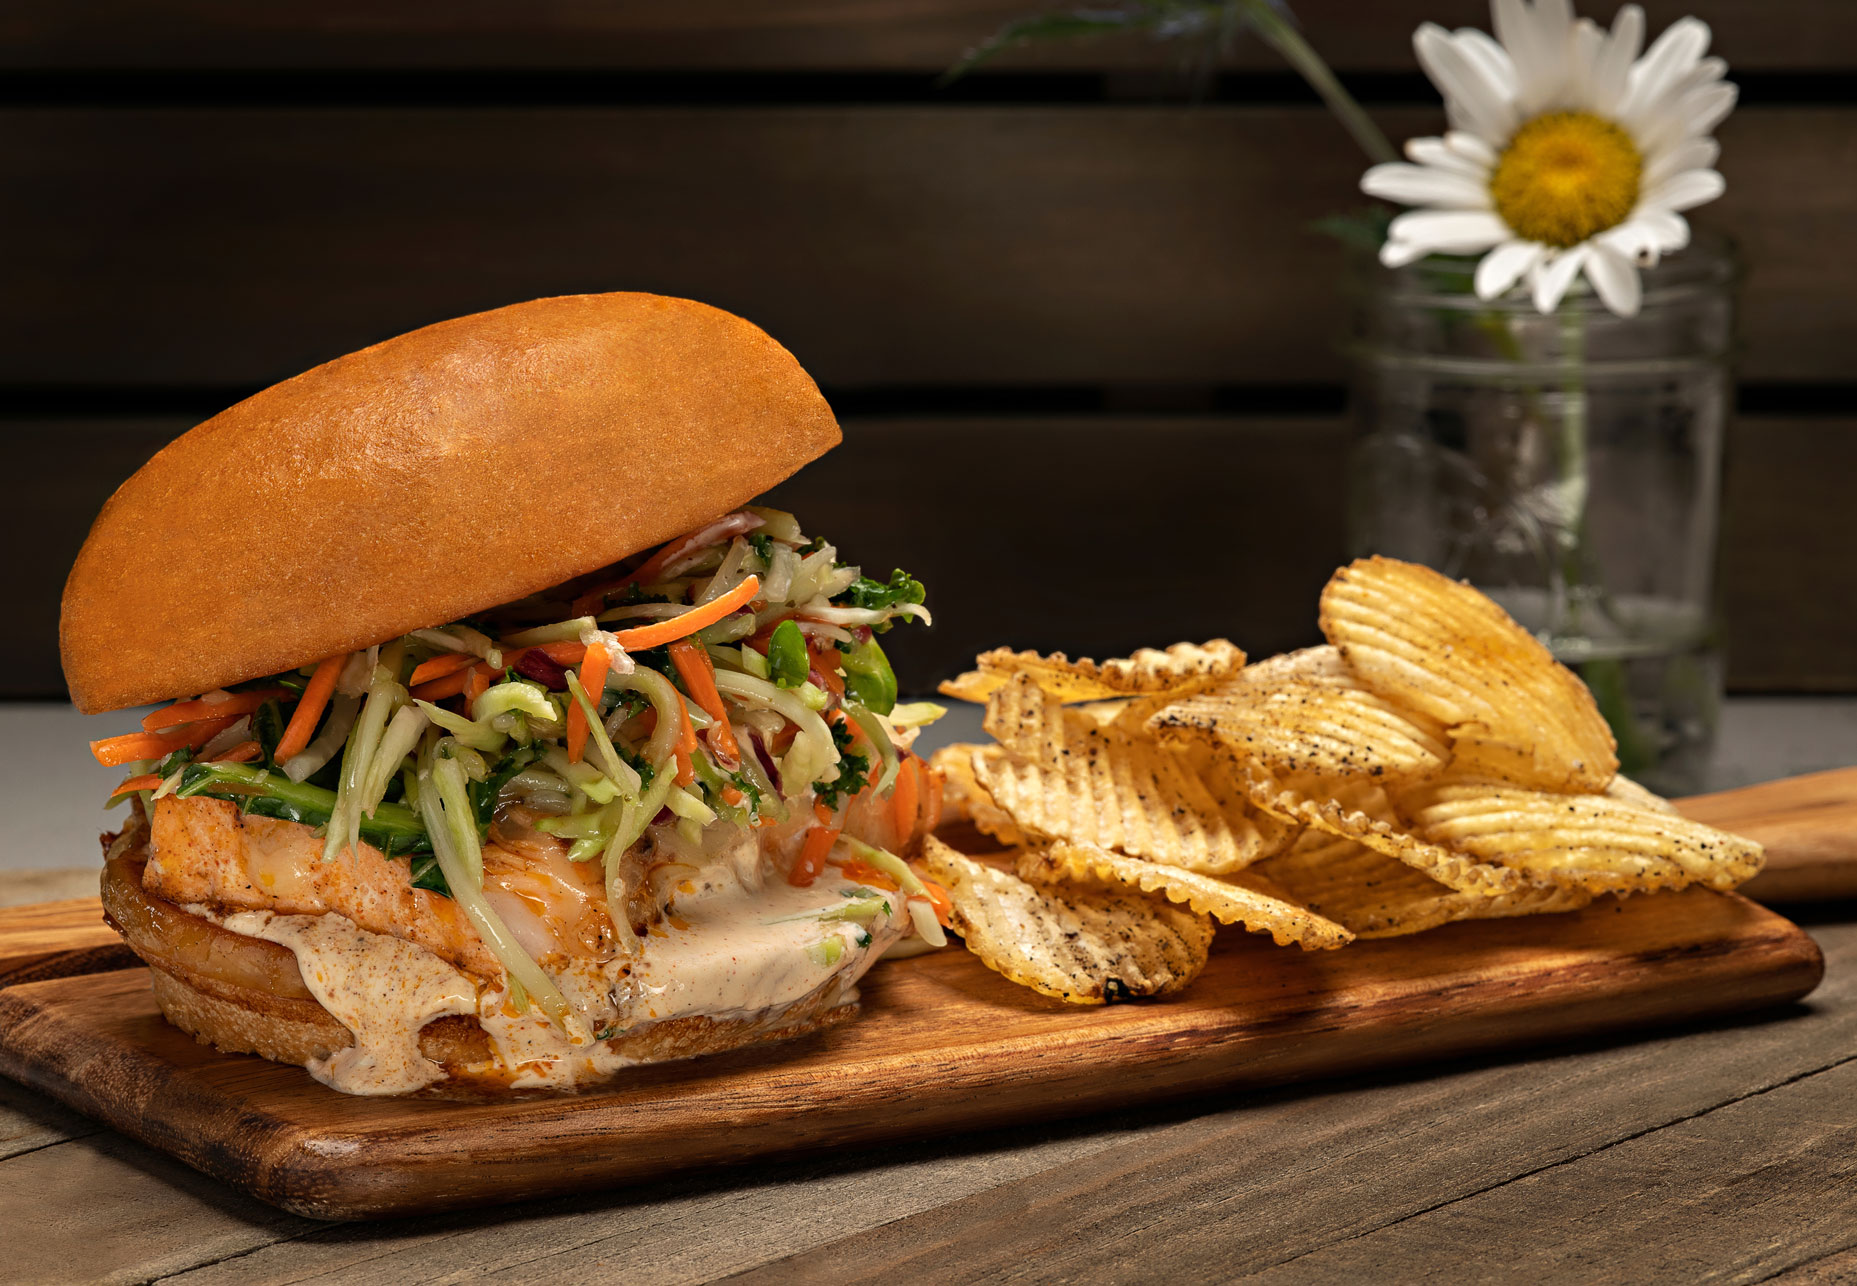 food photography for restaurant menu advertising